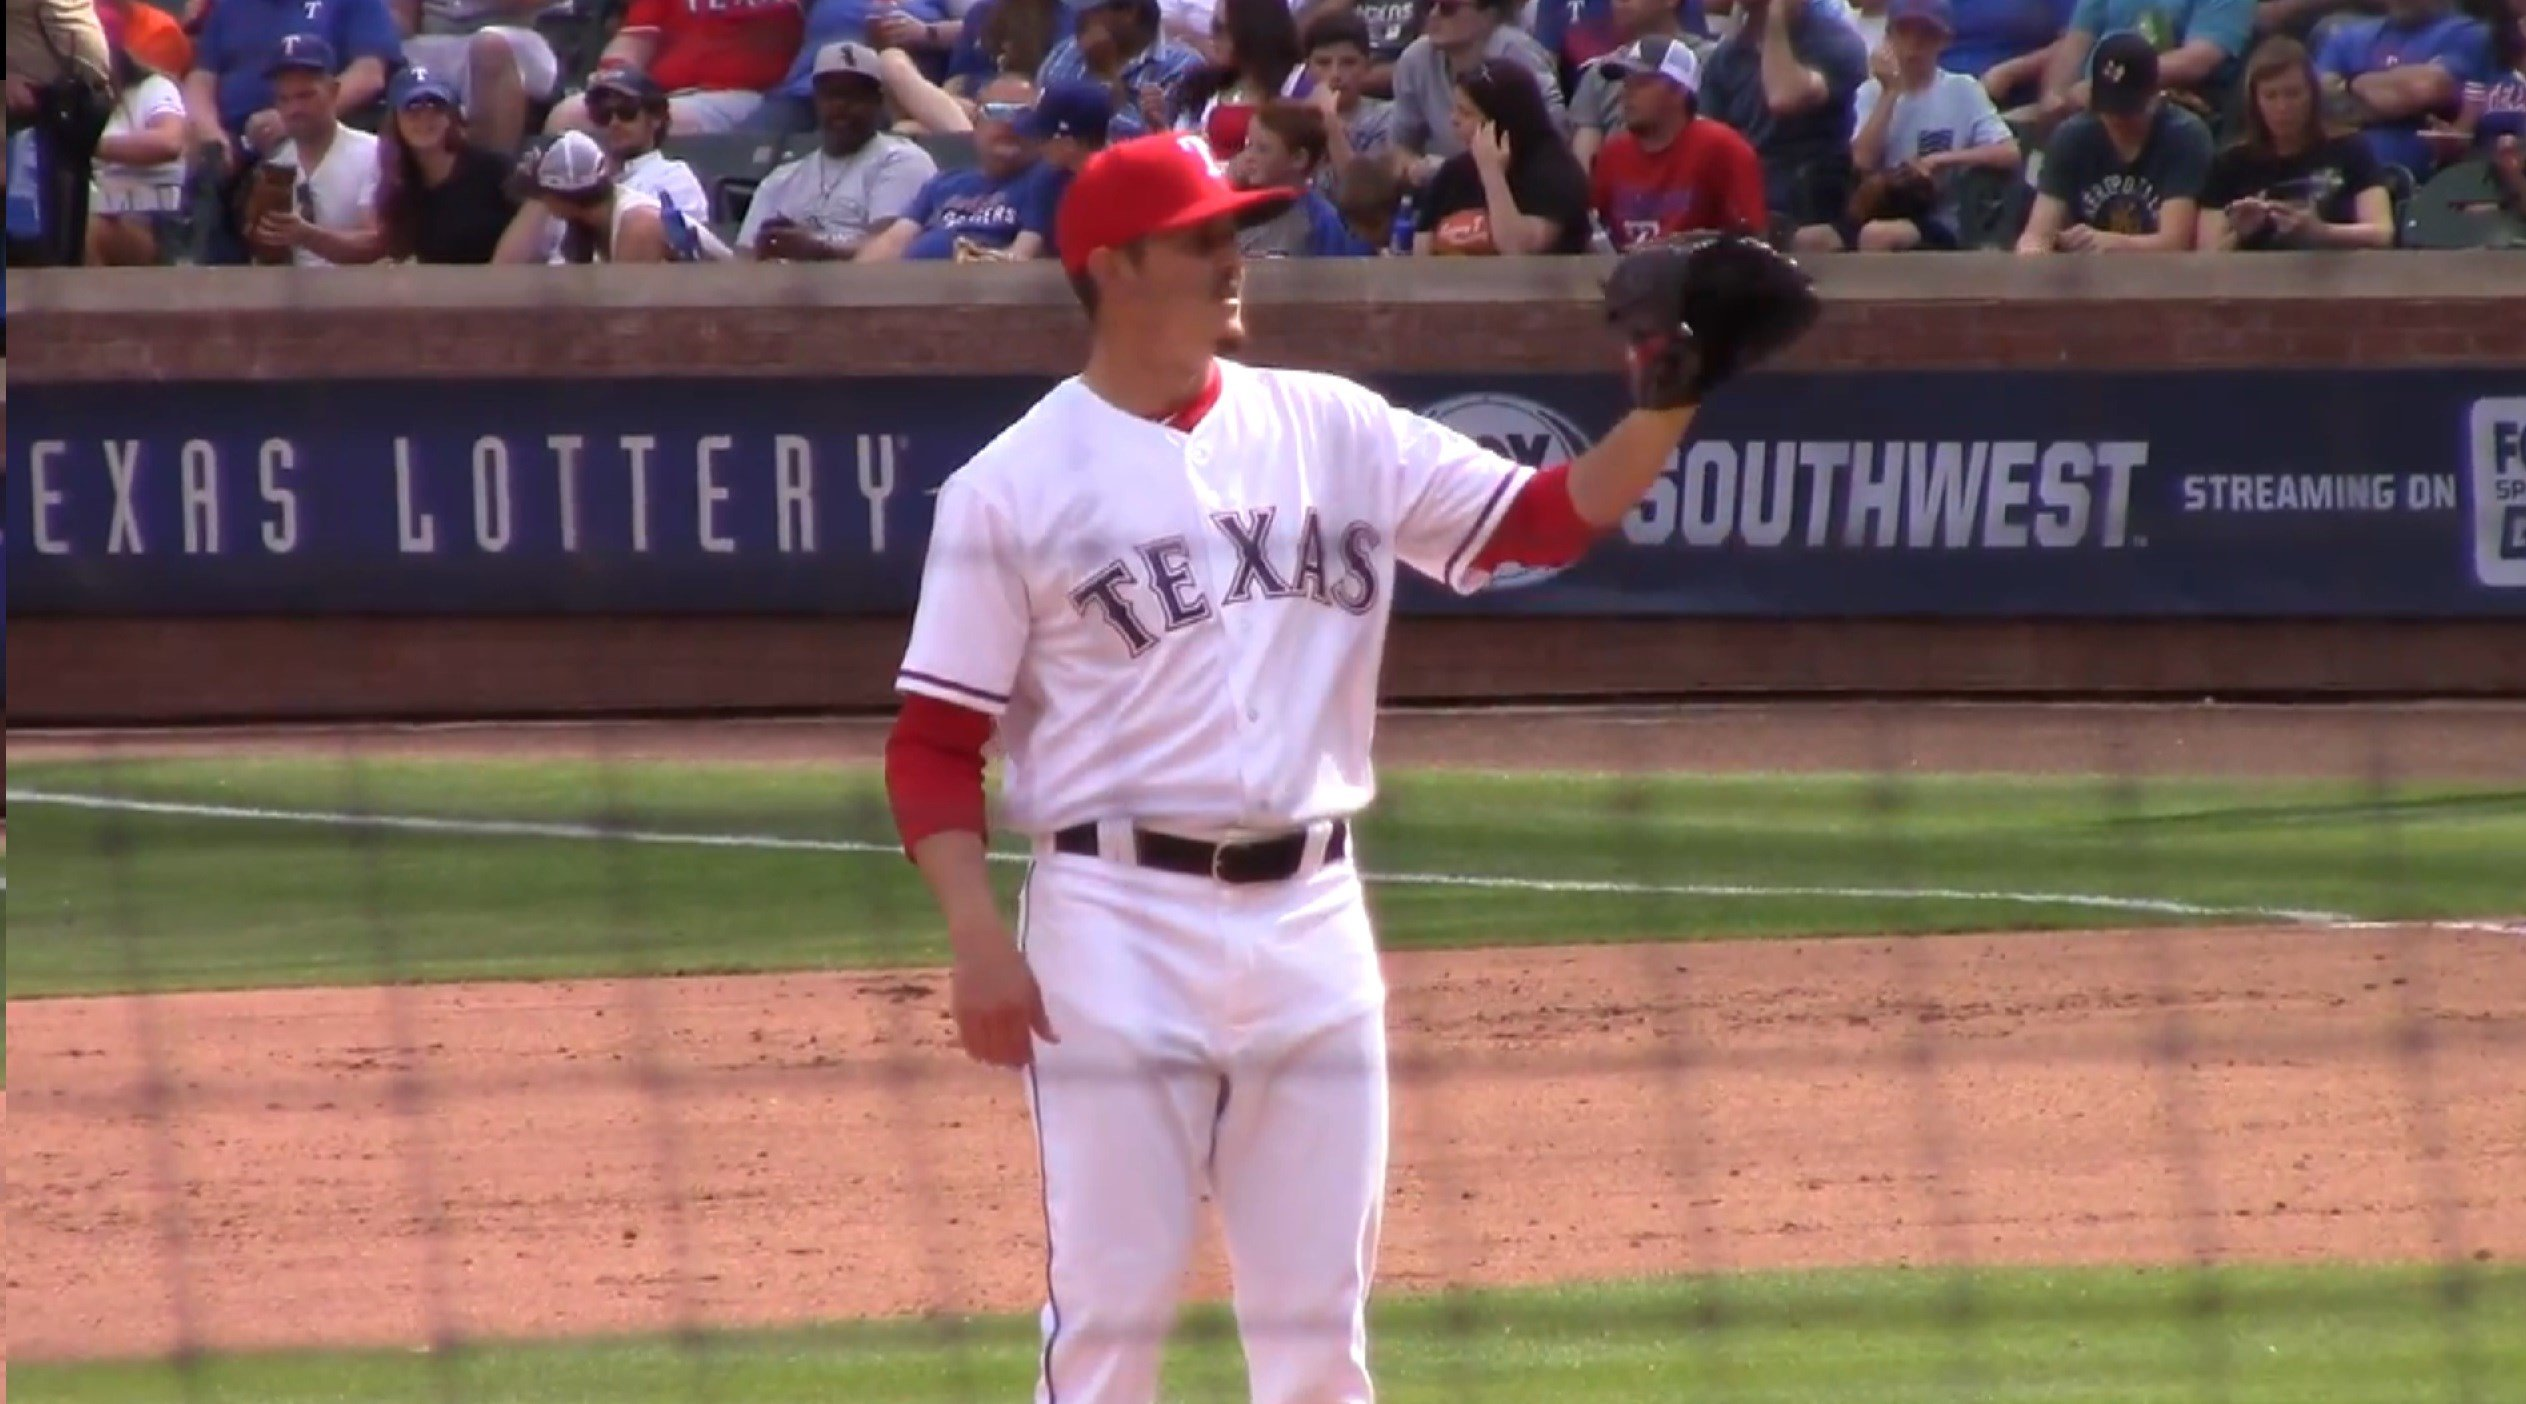 Nick Gardewine graduated from Effingham High School in 2012 and then spent a season at Kaskaskia College before being drafted in the seventh round of the 2013 draft by the Rangers.